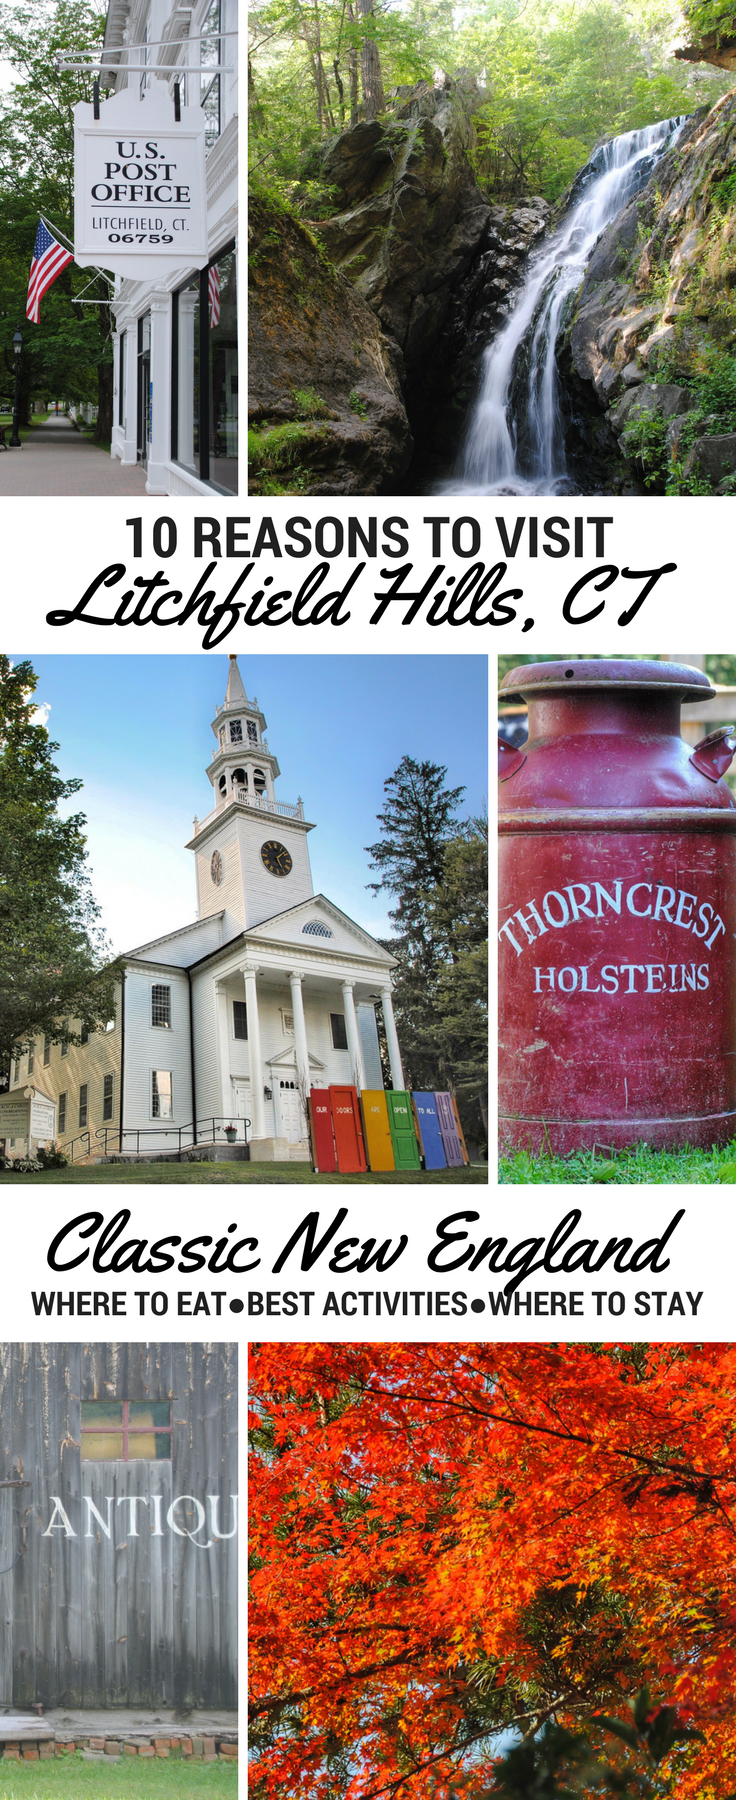 Litchfield Hills CT 10 Reasons to Visit.png